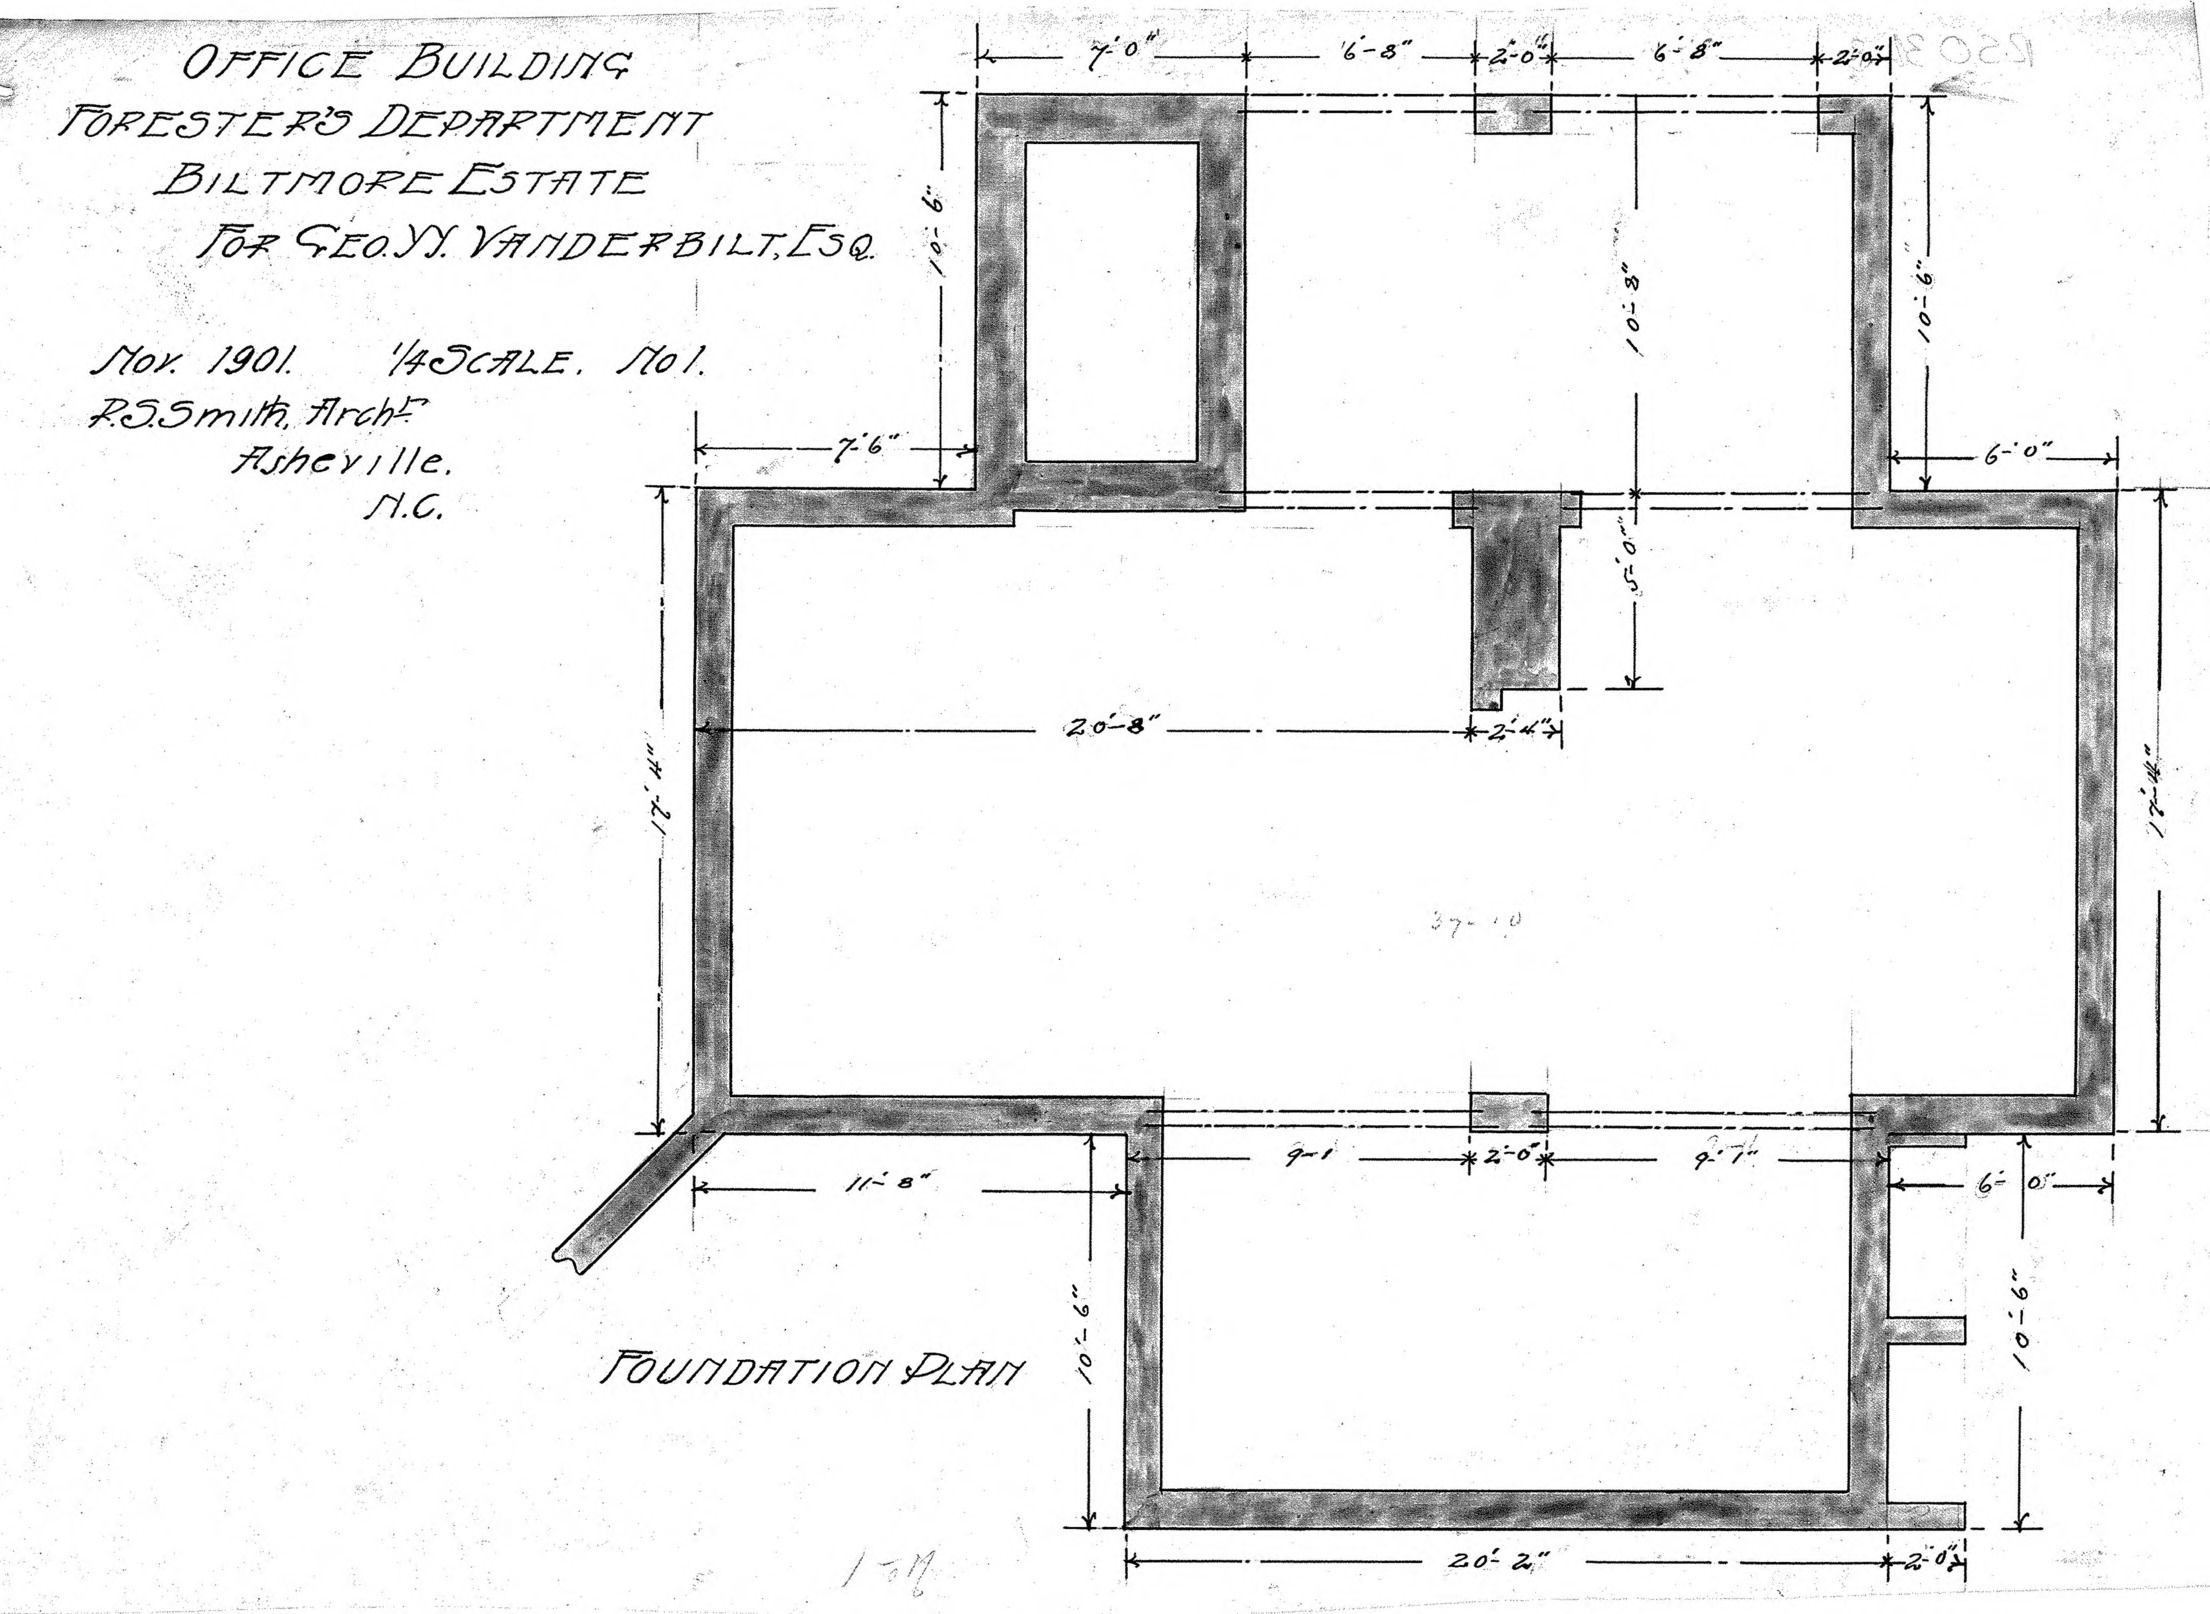 Office building foresters department for geo w for Foundation plan drawing